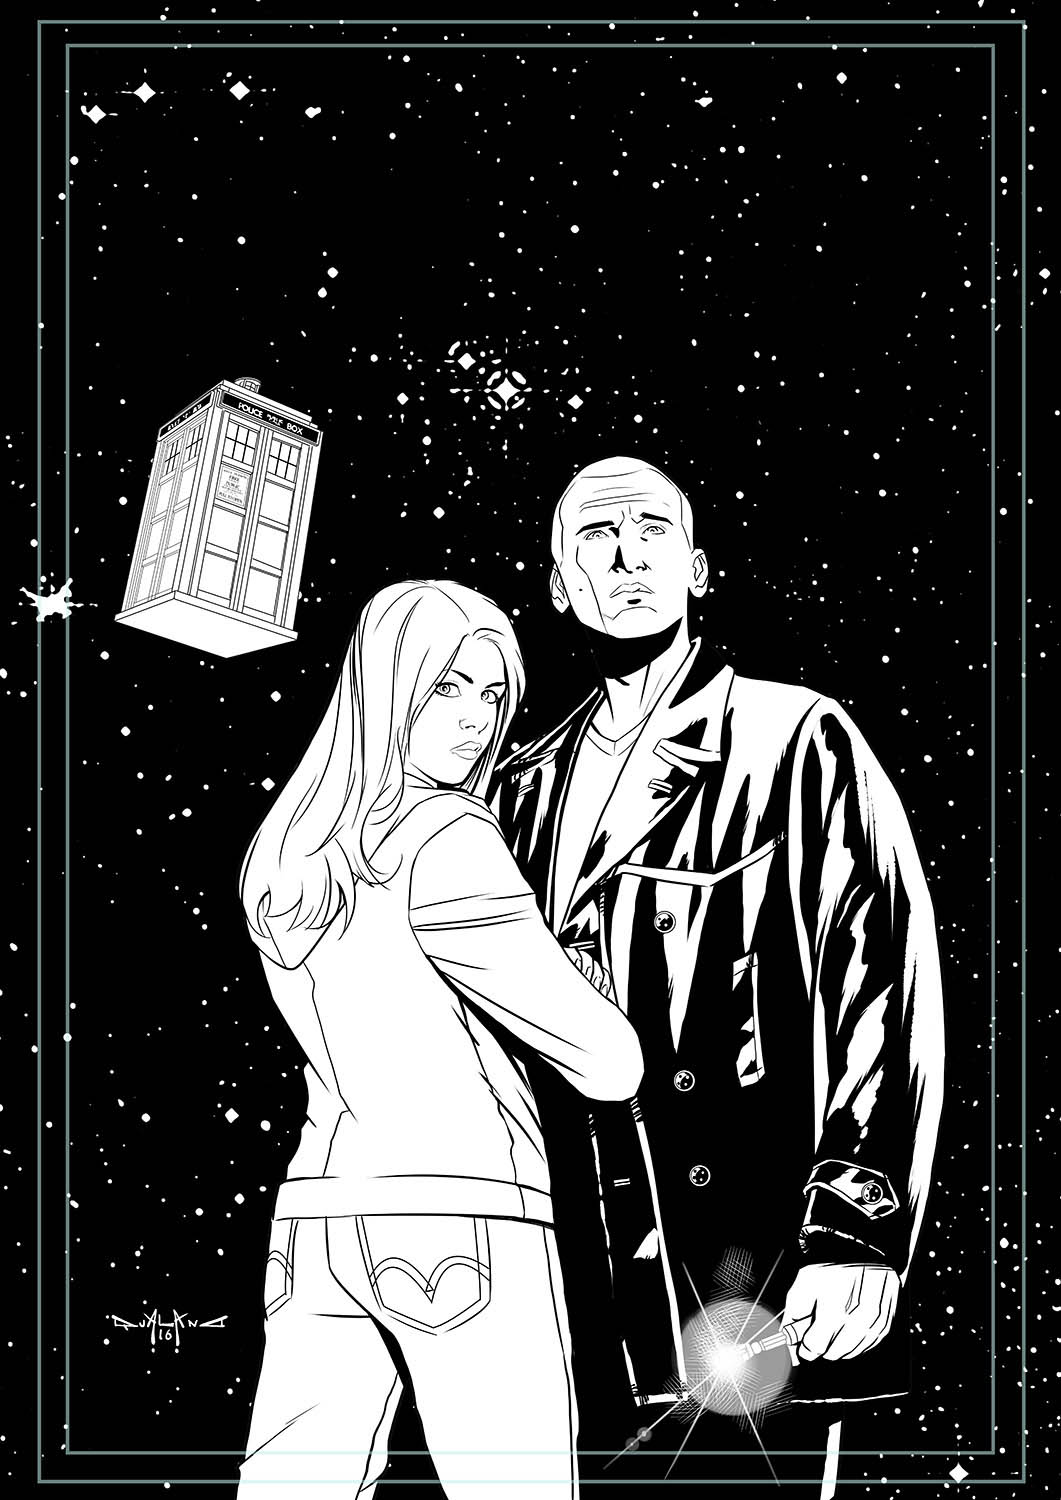 pasquale-qualano-portfolio-covers-Doctor-Who-9th-Doctor-#9-Inks---